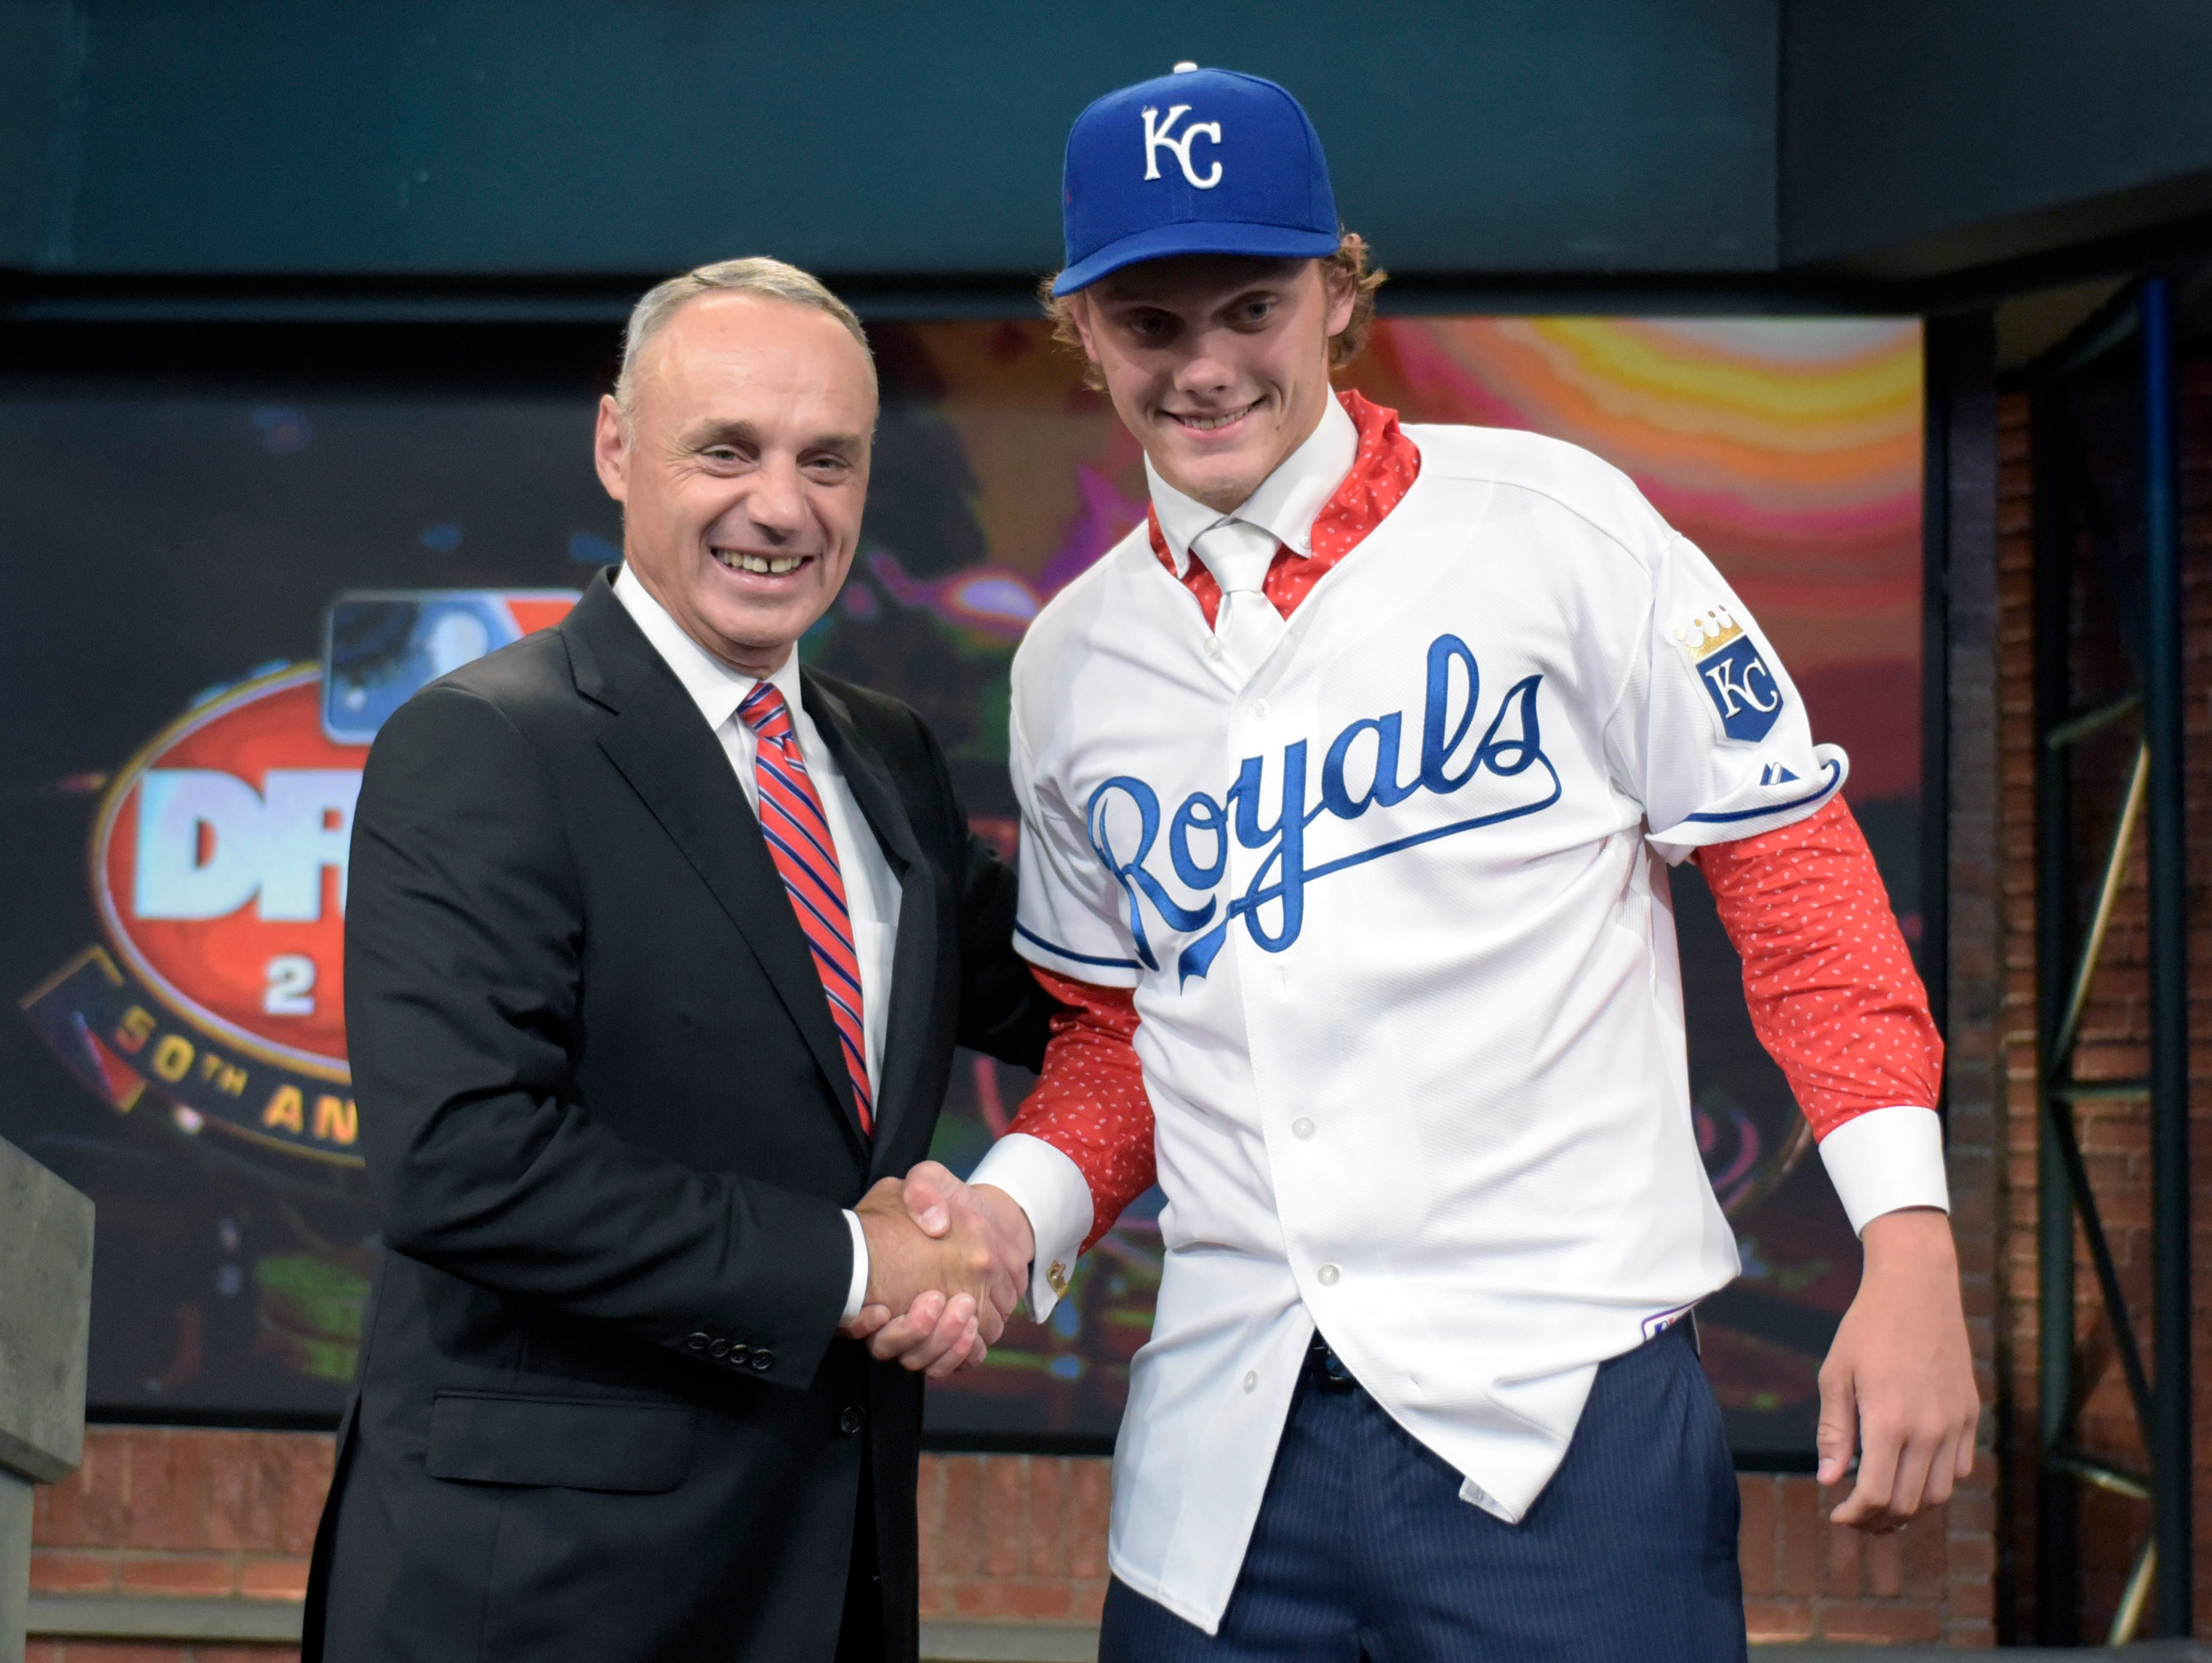 Commissioner of Major League Baseball Rob Manfred, left, poses with pitcher Ashe Russell from Cathedral High School in Indianapolis, Ind., at the 2015 MLB baseball draft Monday, June 8, 2015, in Secaucus, N.J. Whitley was chosen by the Kansas City Royals with the 21st selection.